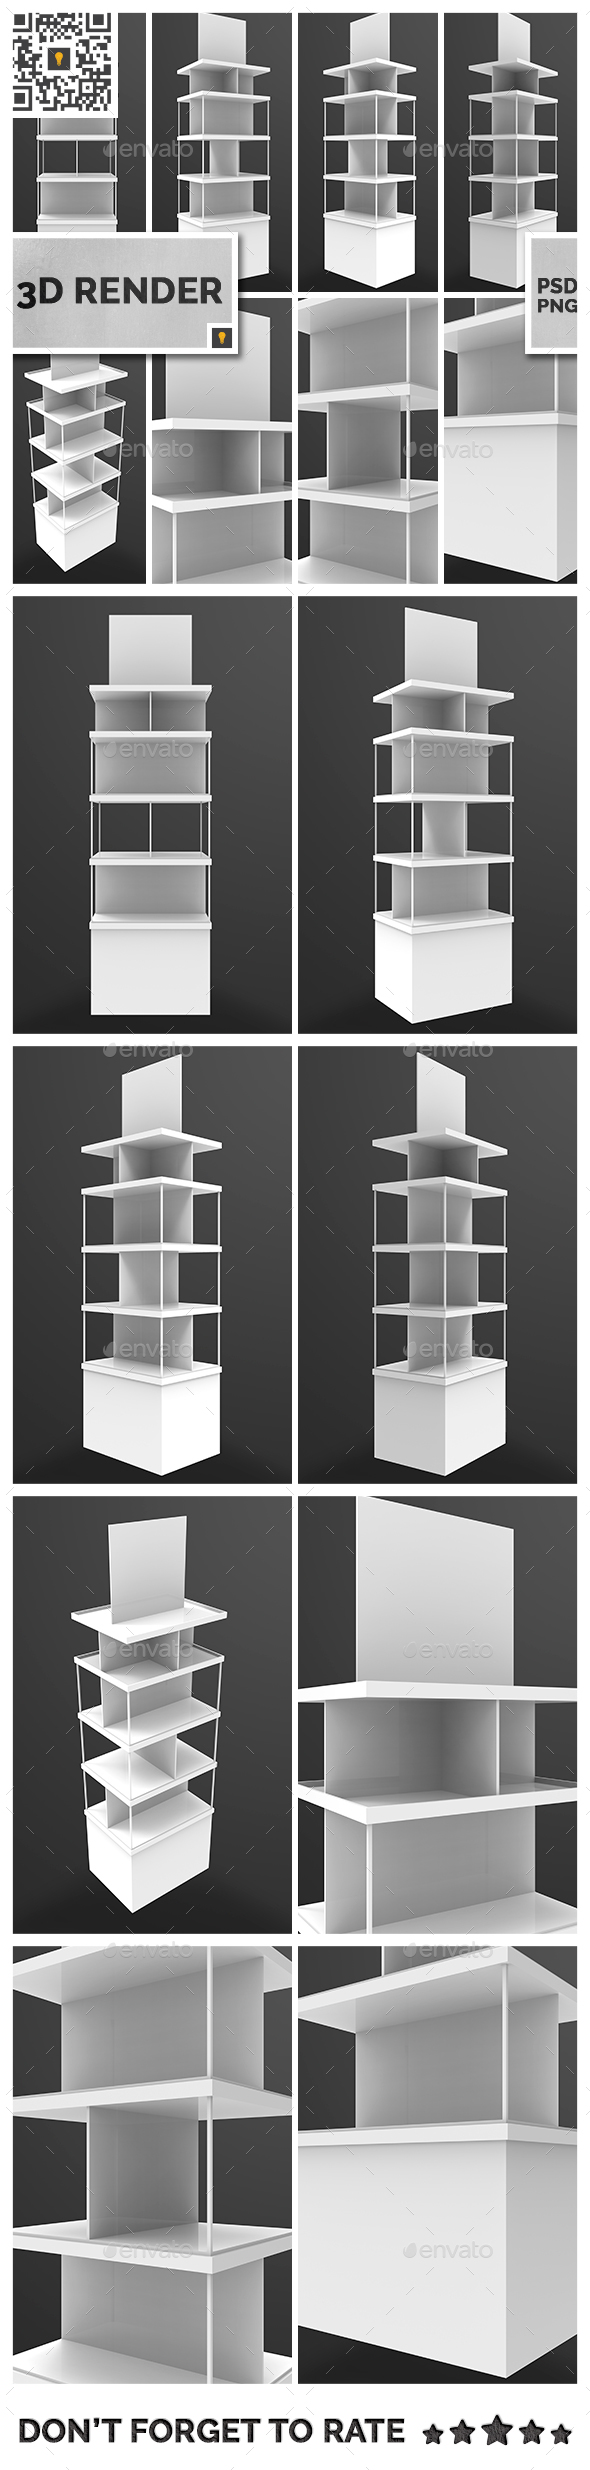 Store Display 3D Render - Objects 3D Renders